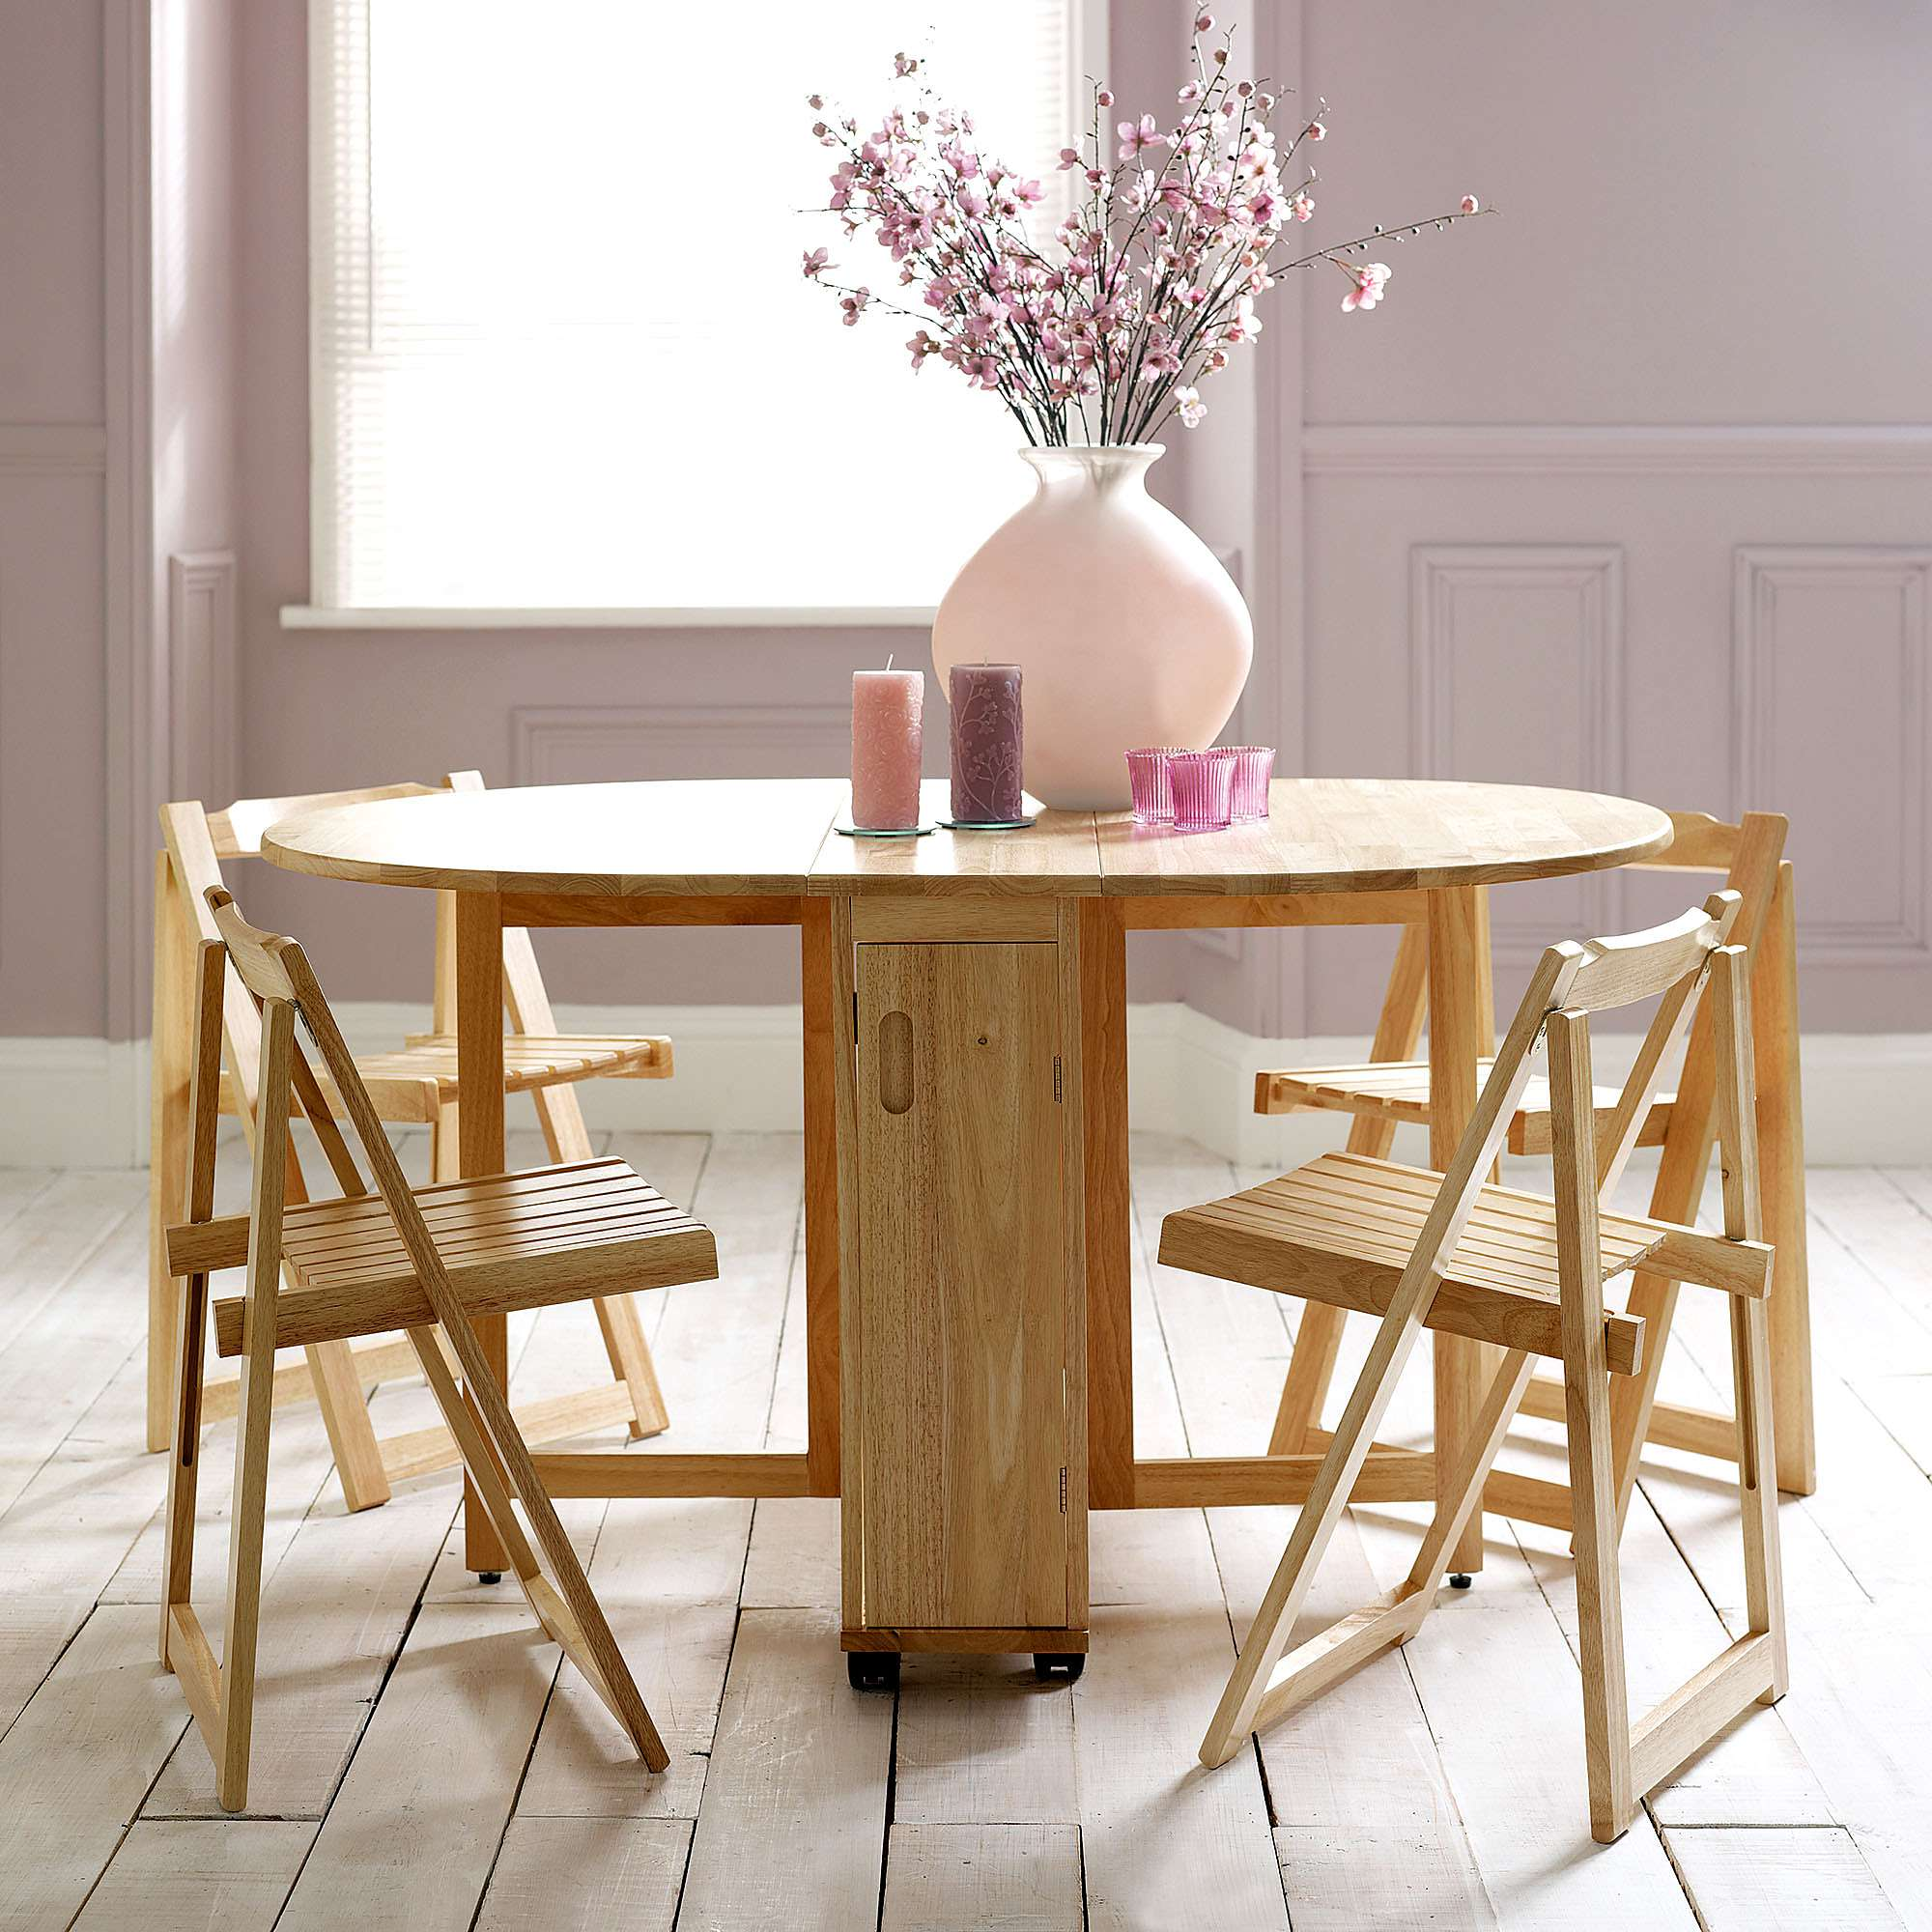 Choose A Folding Dining Table For Small E